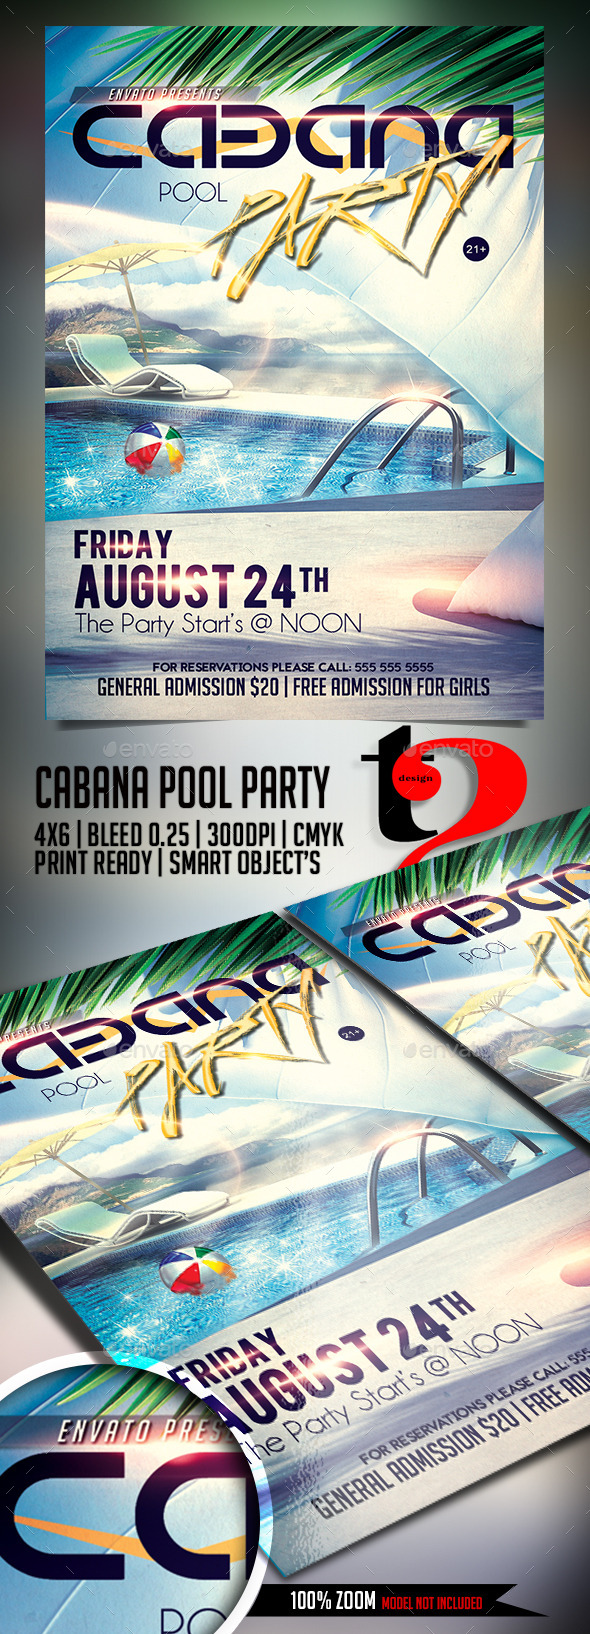 Summer - Cabana Pool Party - Clubs & Parties Events